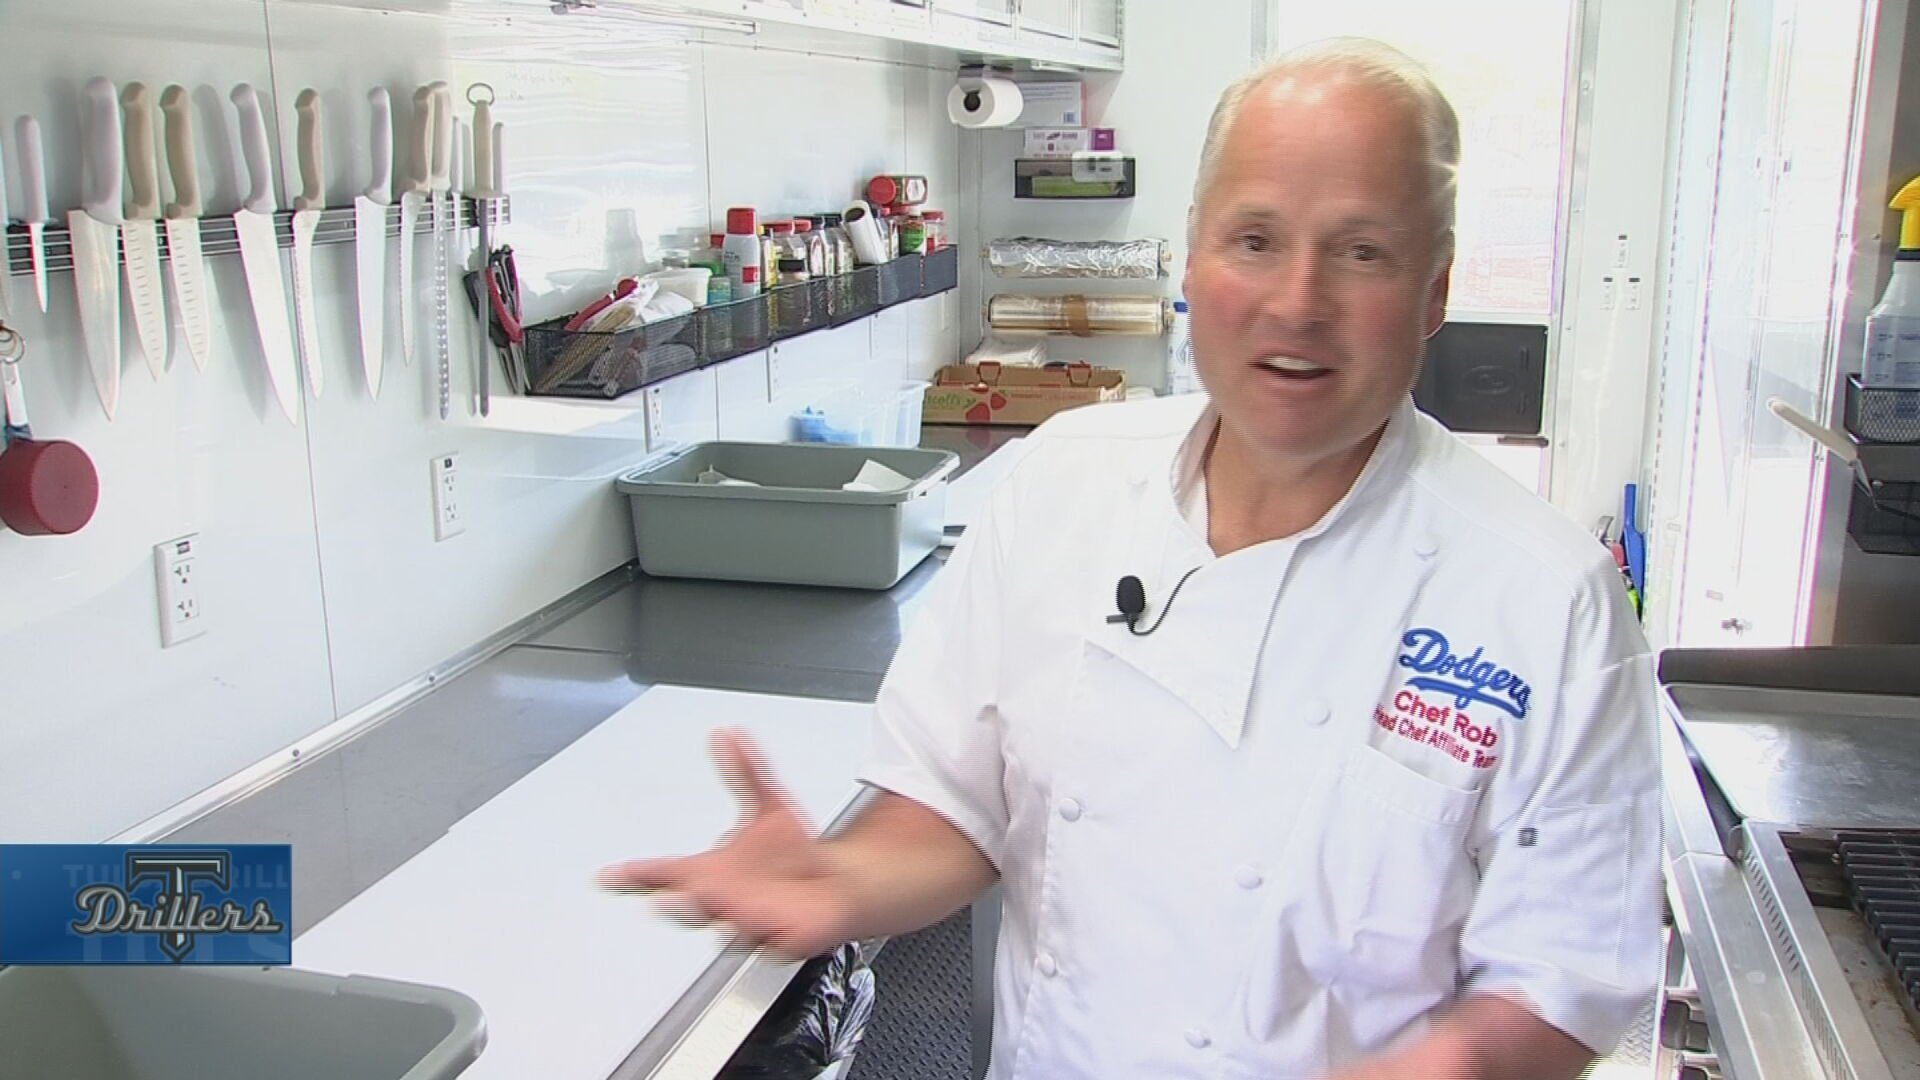 Tulsa Drillers' Team Chef Helps Cook Up Recipe For Success